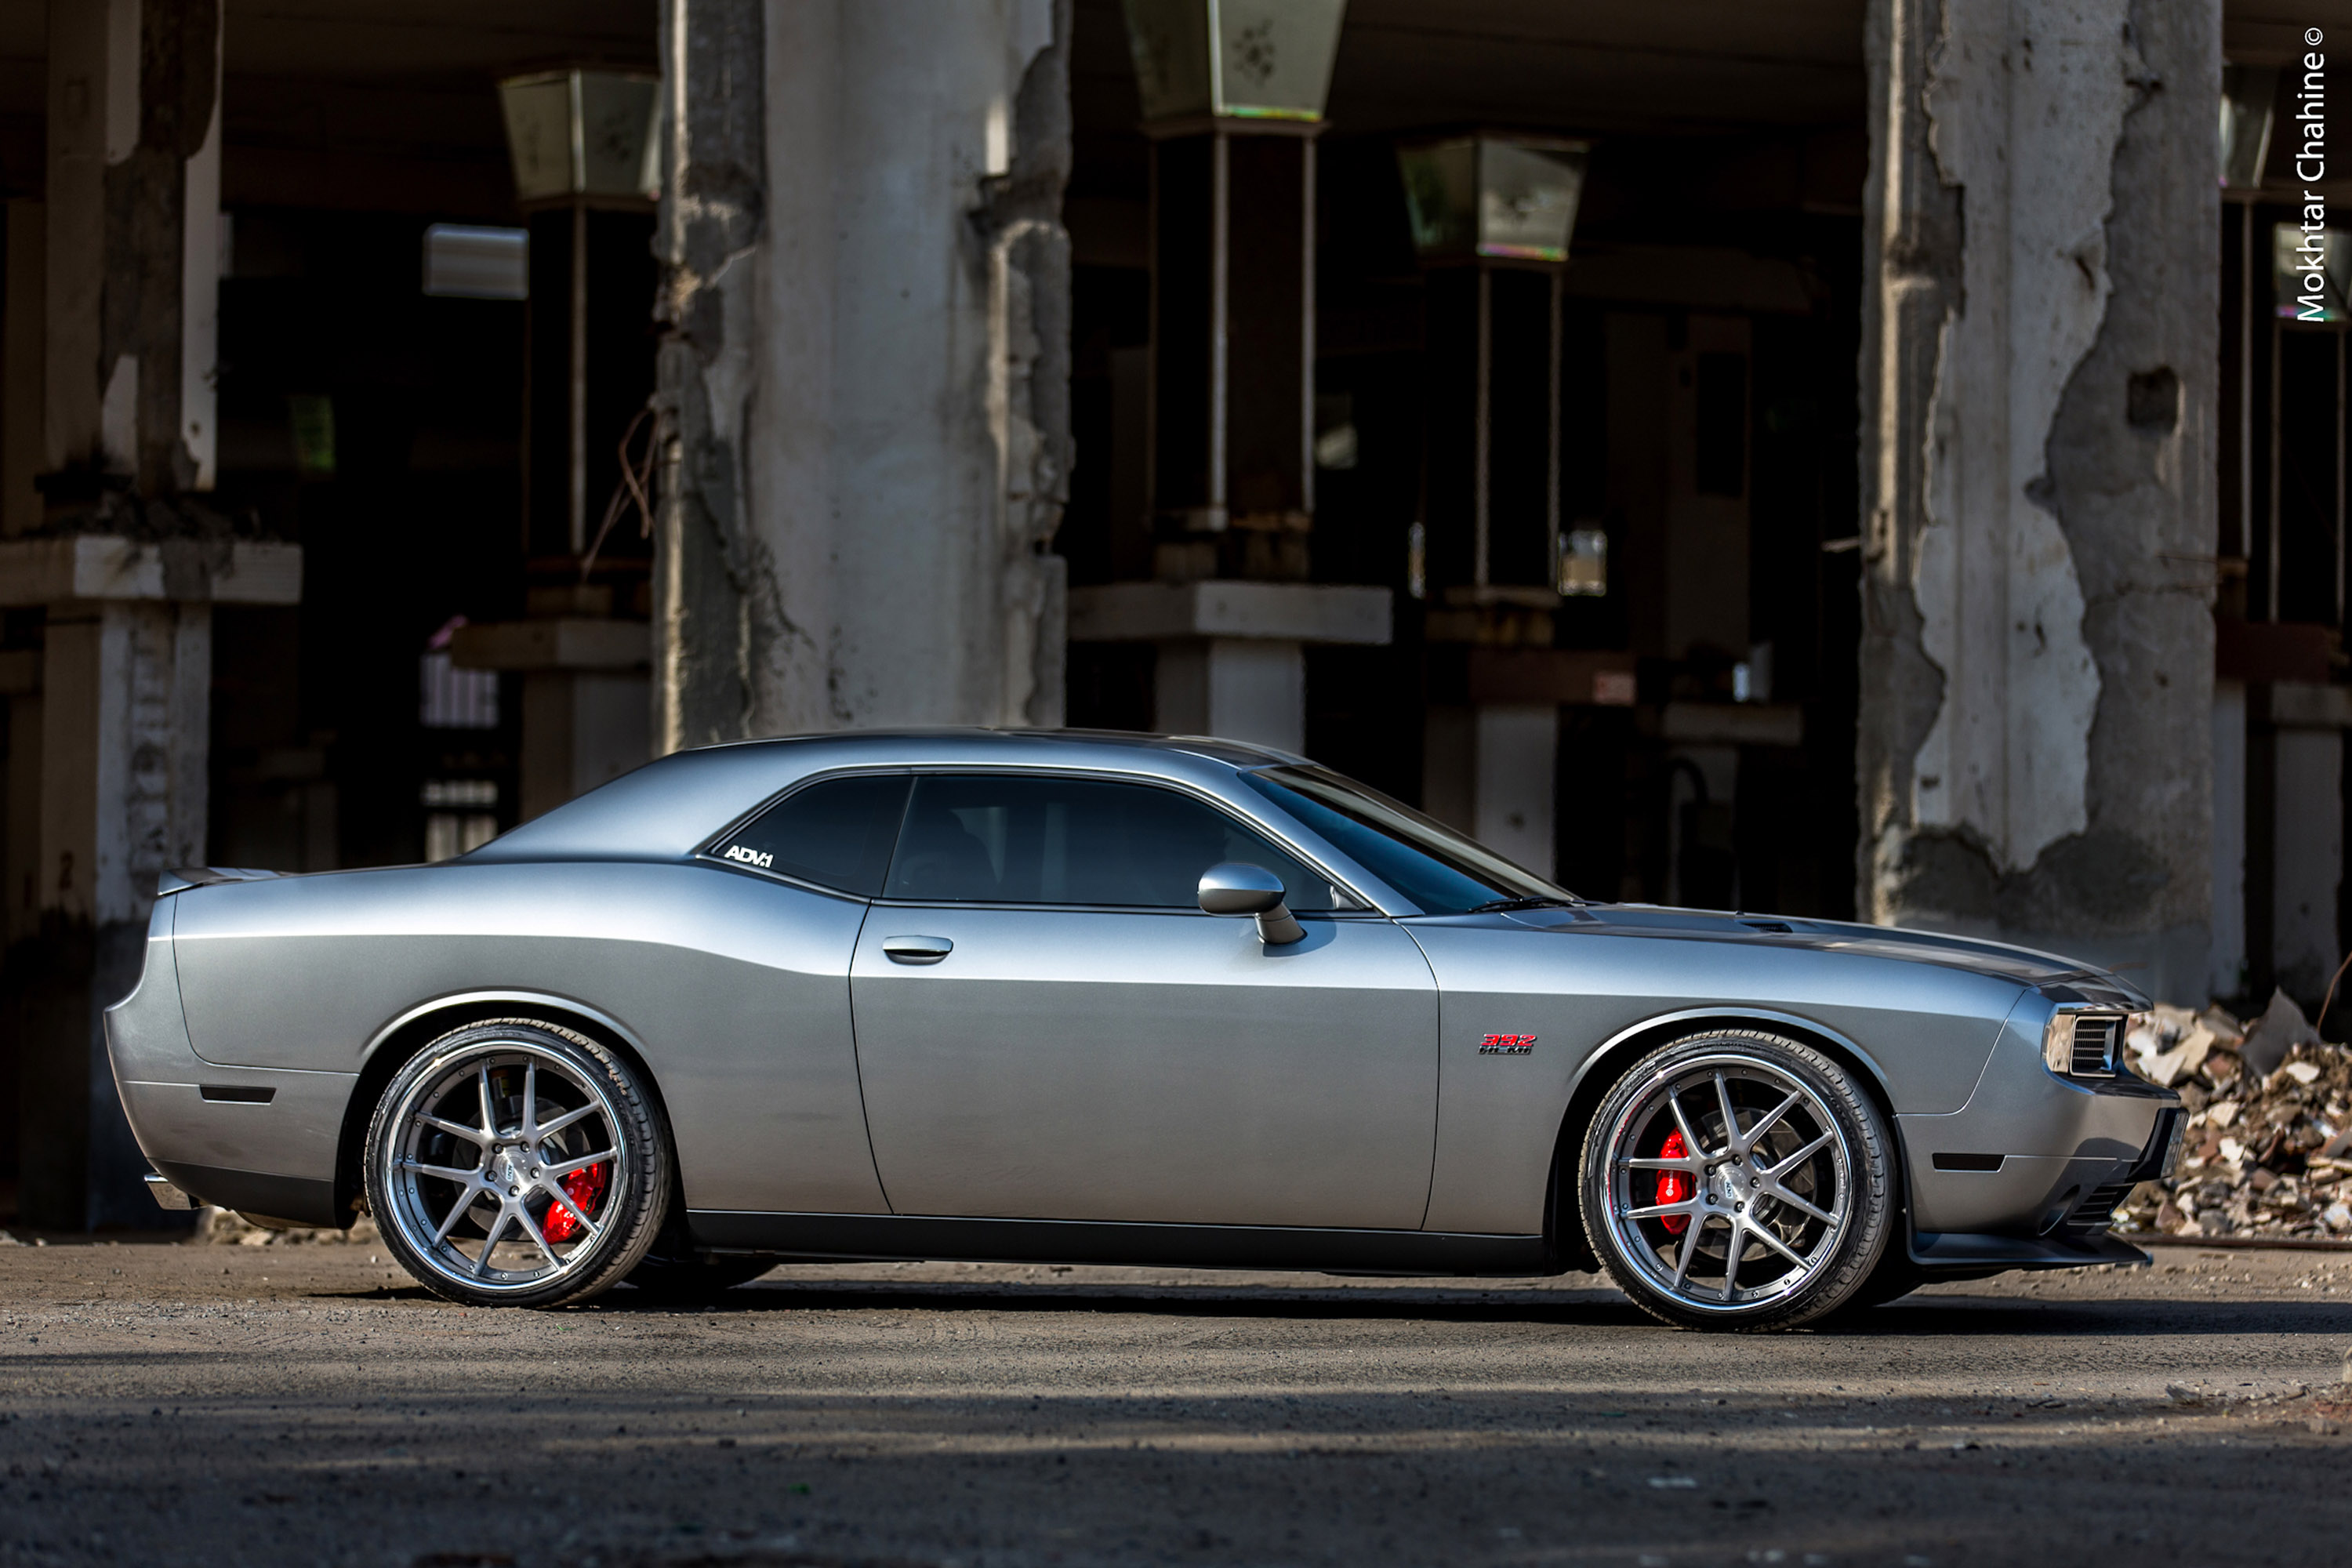 F A Ce E F Bfd on 2013 Dodge Challenger Srt8